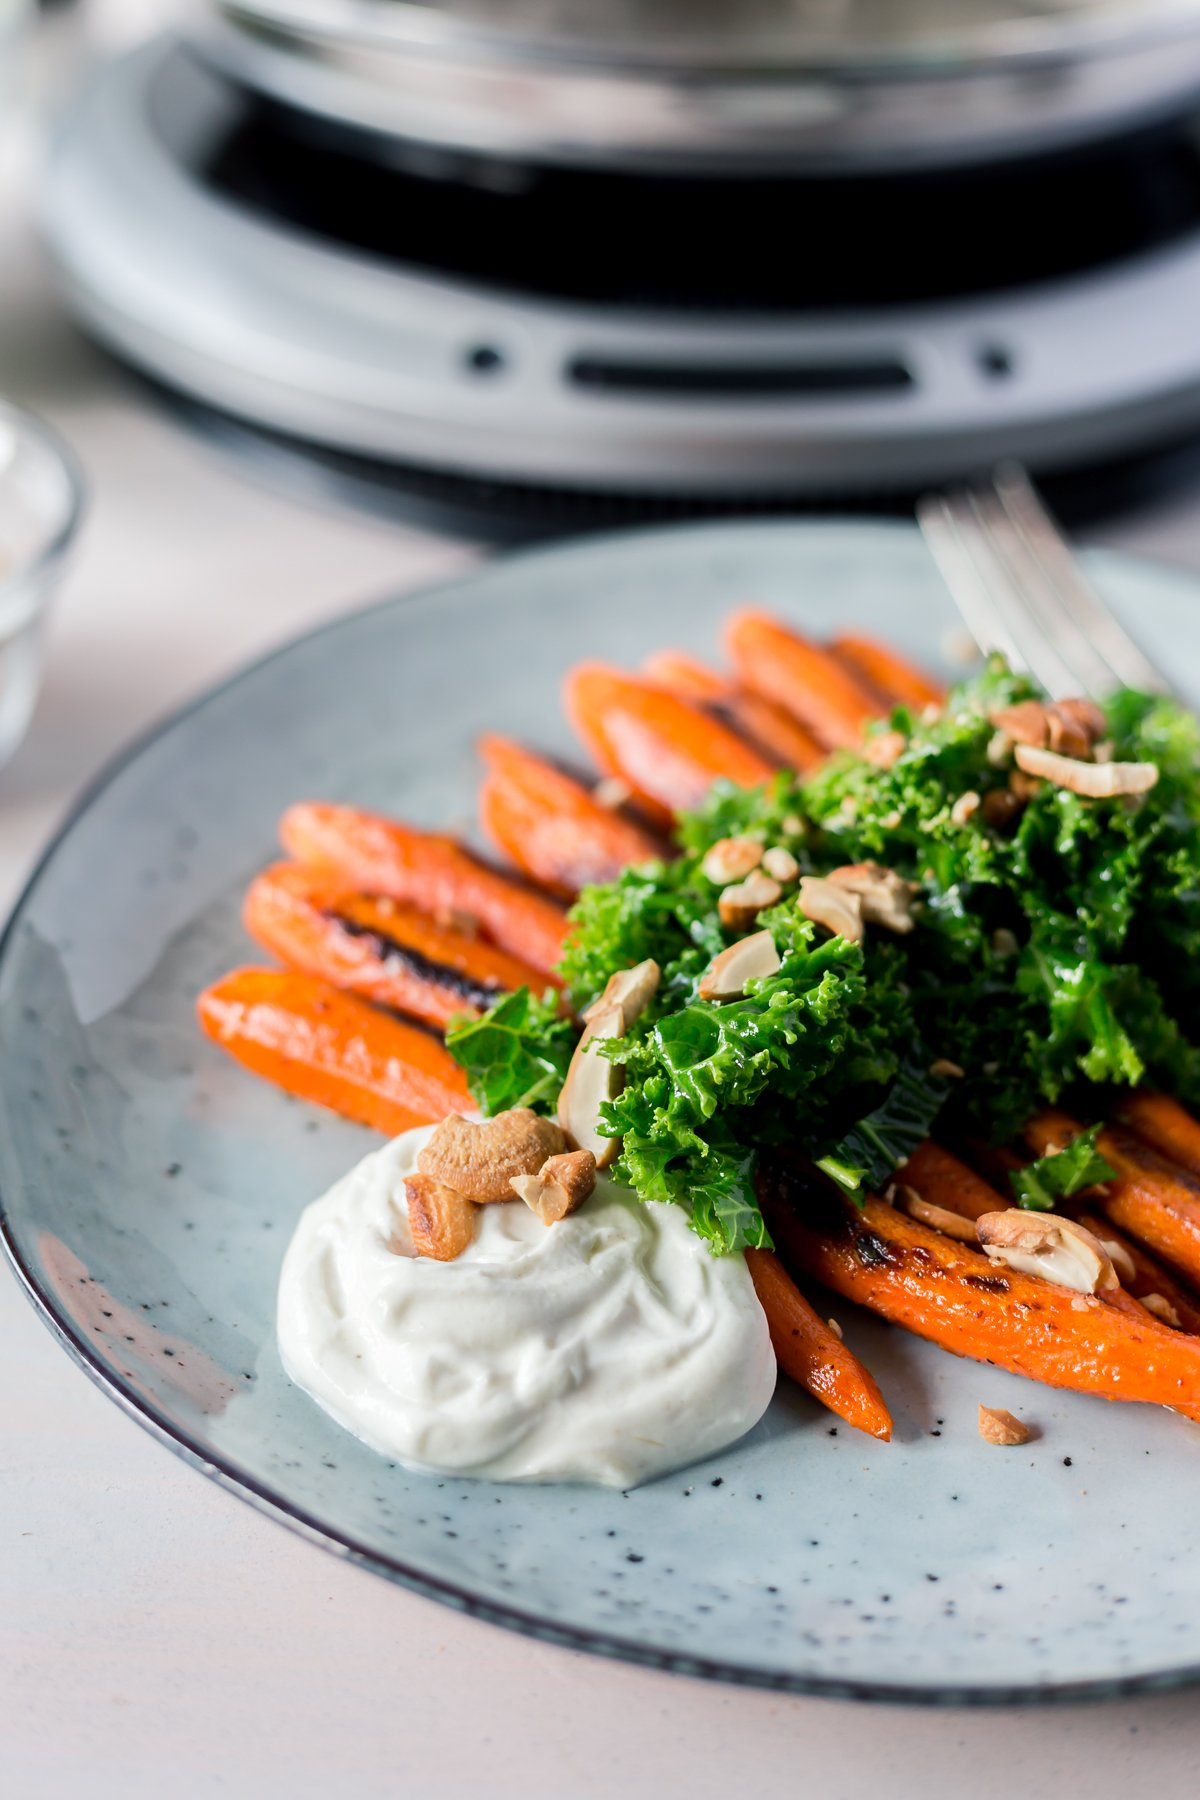 The perfect side dish to any meal, this roasted carrots and kale salad with za'atar seasoning will quickly become a family favorite at dinner! An easy recipes win! | asimplepantry.com